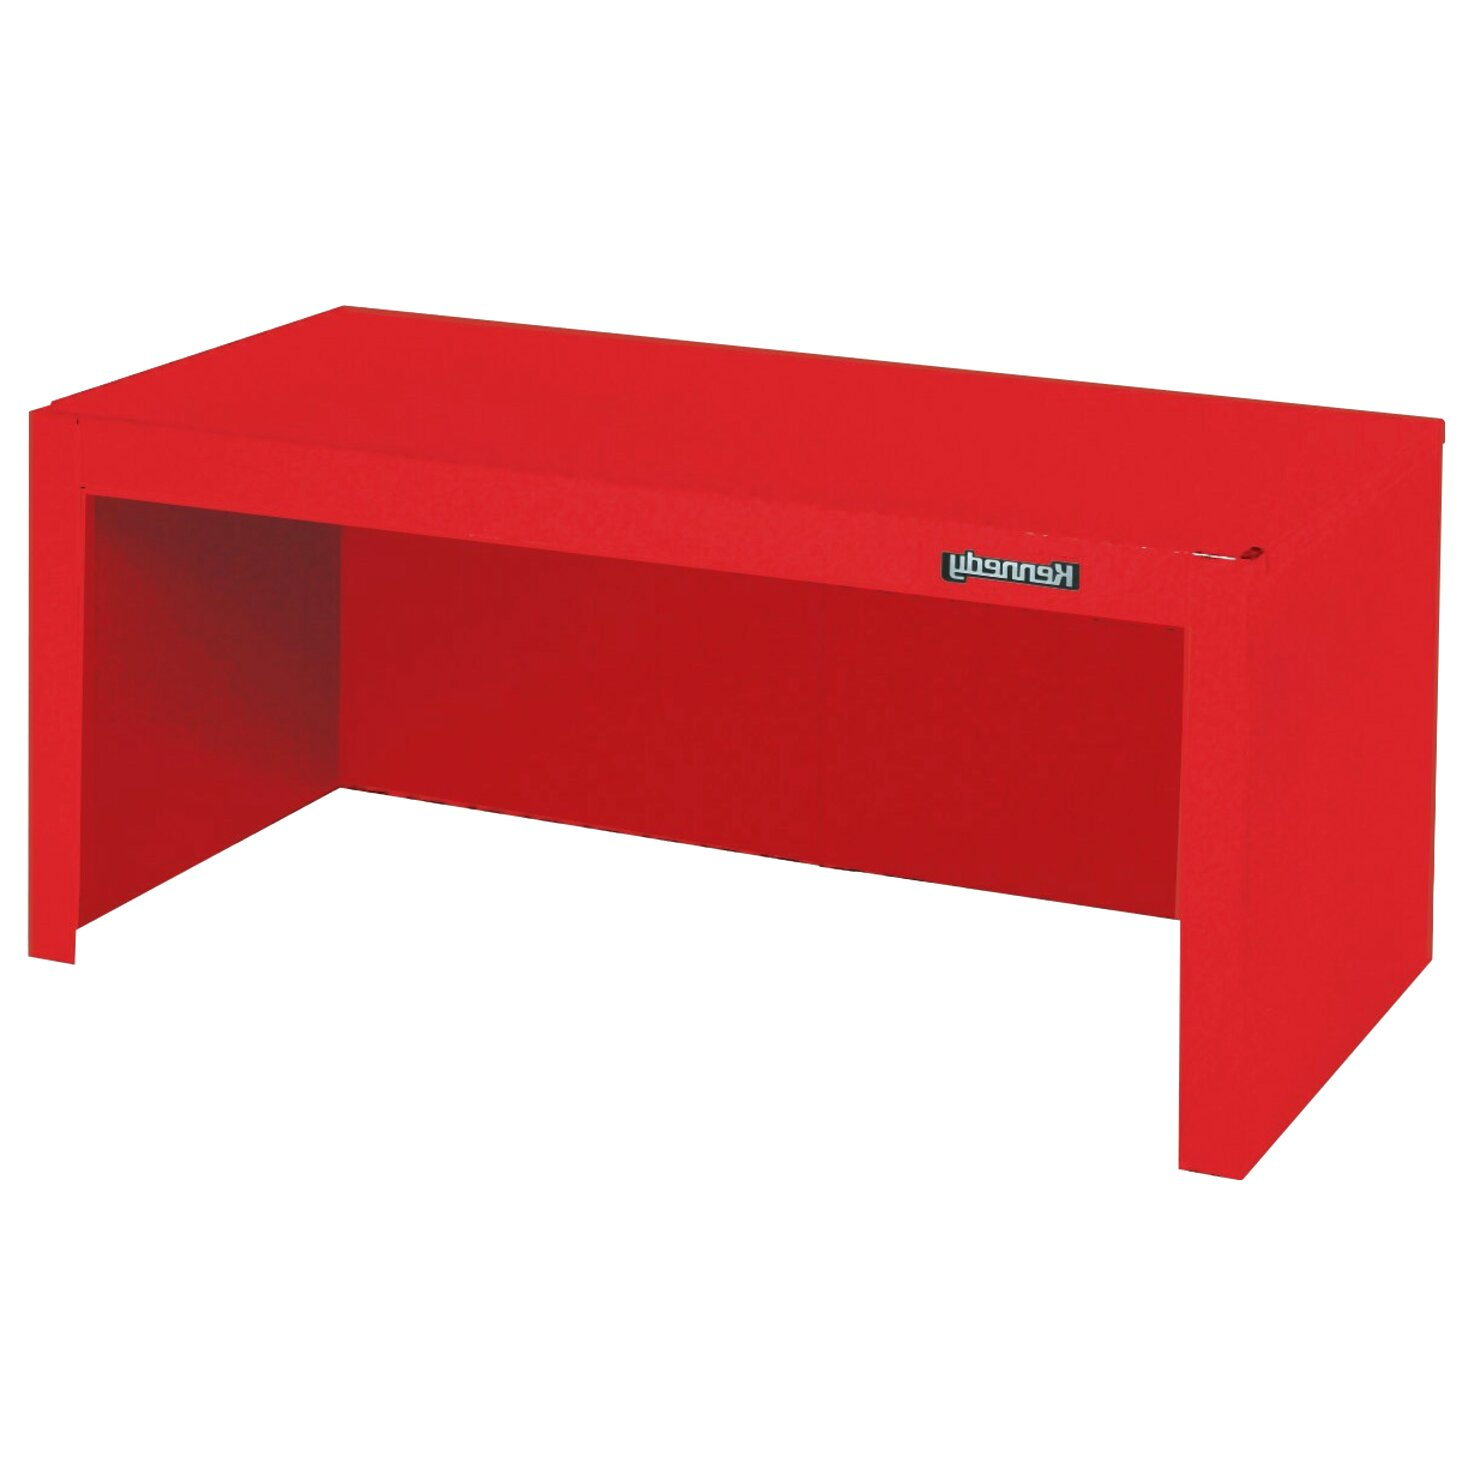 red kennedy tool box for sale